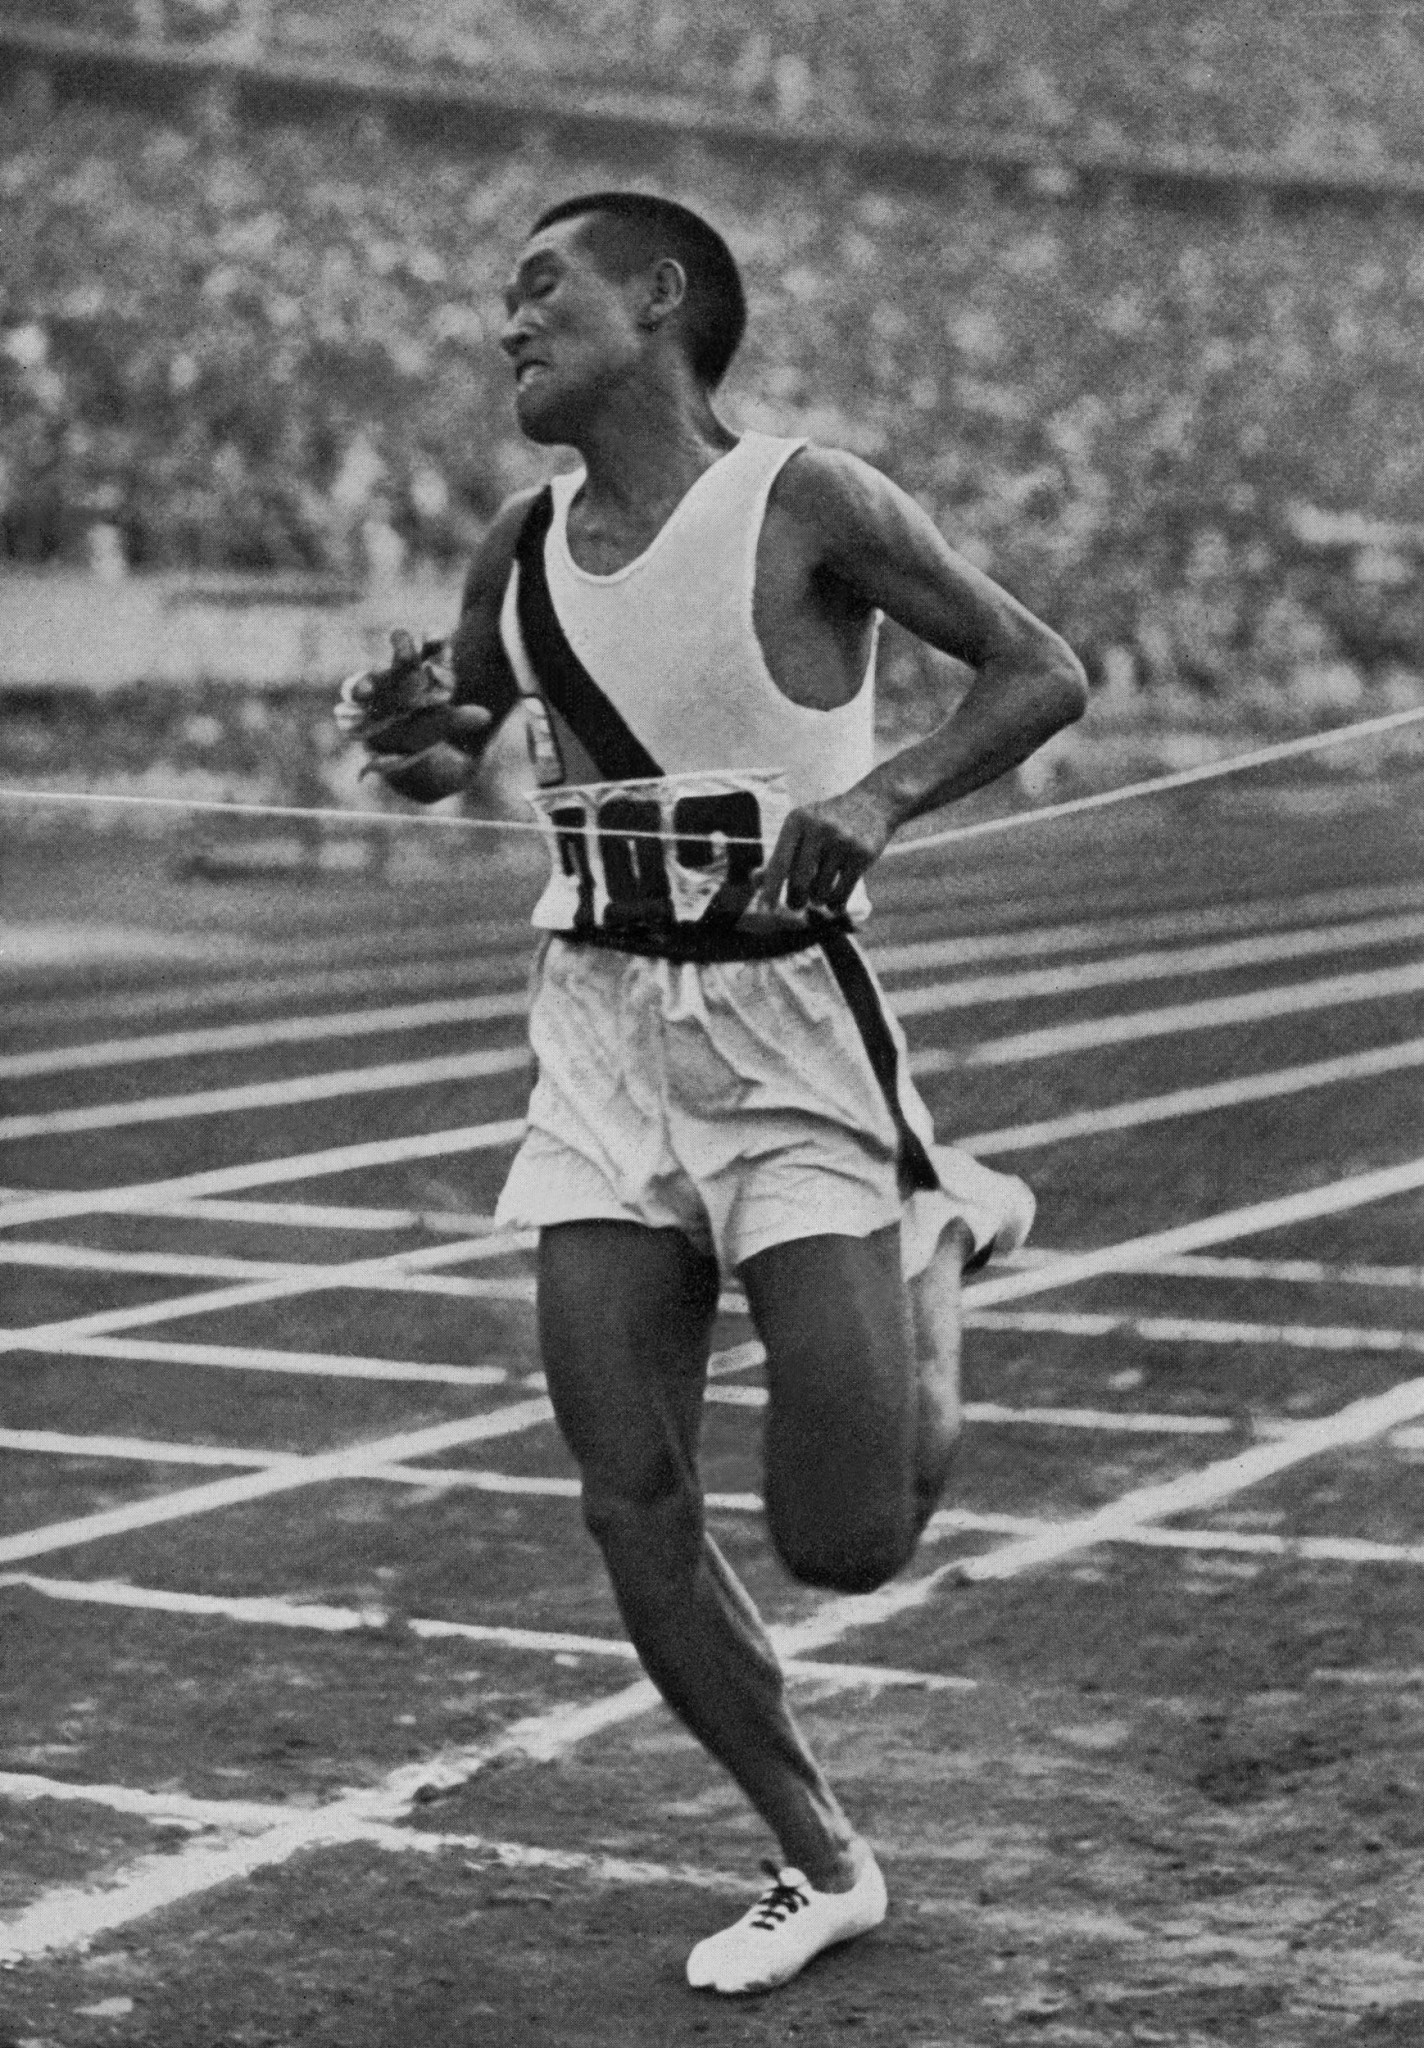 Korean champion Kitei Son, running in the colours of the Japanese Empire, crosses victoriously the finish line of the Berlin Olympic marathon in August 1936 ©Getty Images